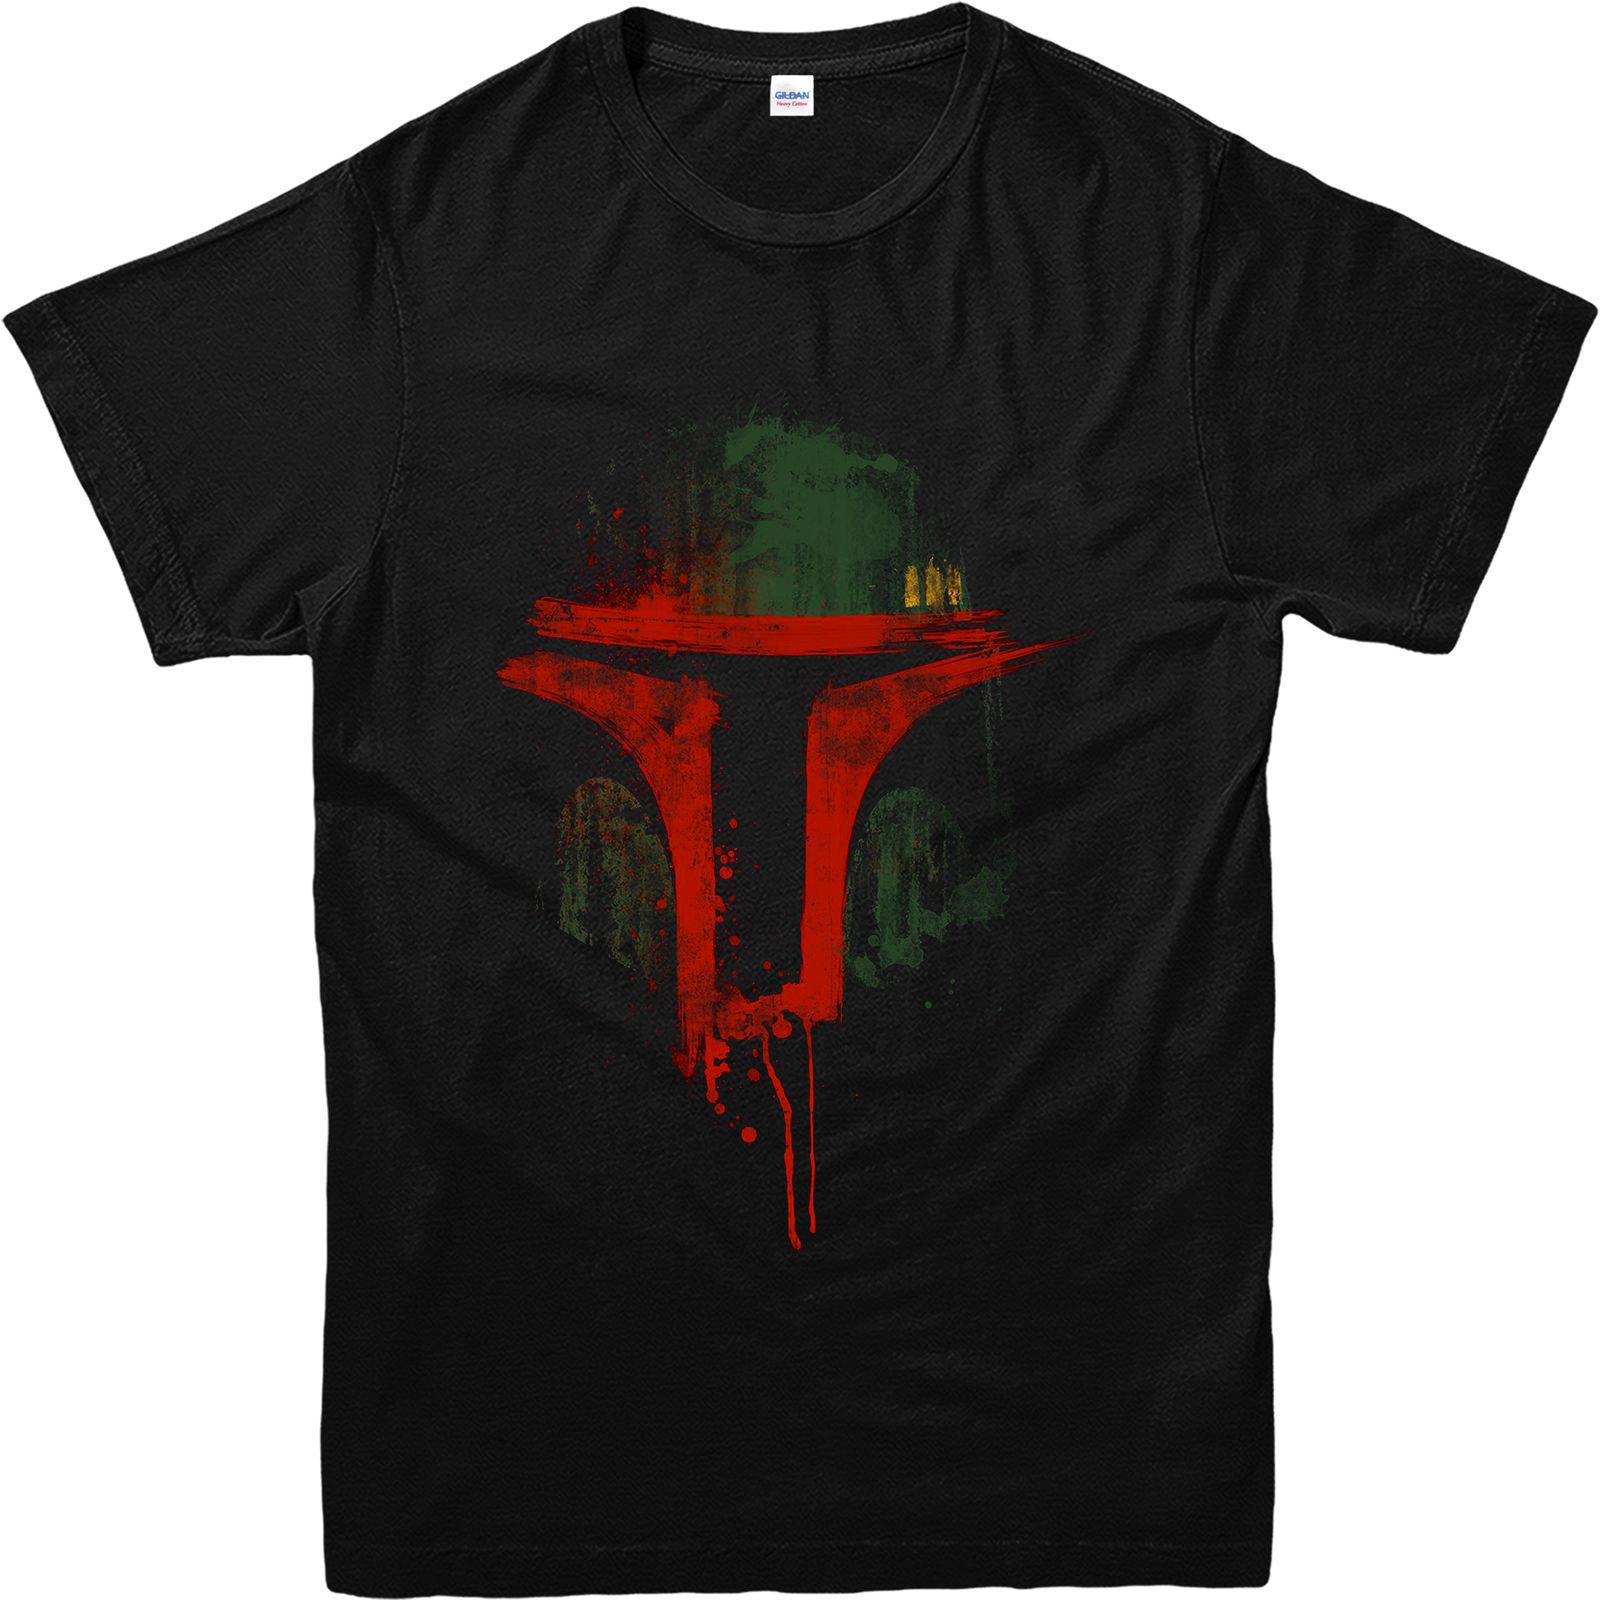 Star Wars T Shirt Boba Fett Face T Shirt Inspired Design Top BFFG Free shipping Harajuku Tops Fashion Classic Unique Cotton in T Shirts from Men 39 s Clothing